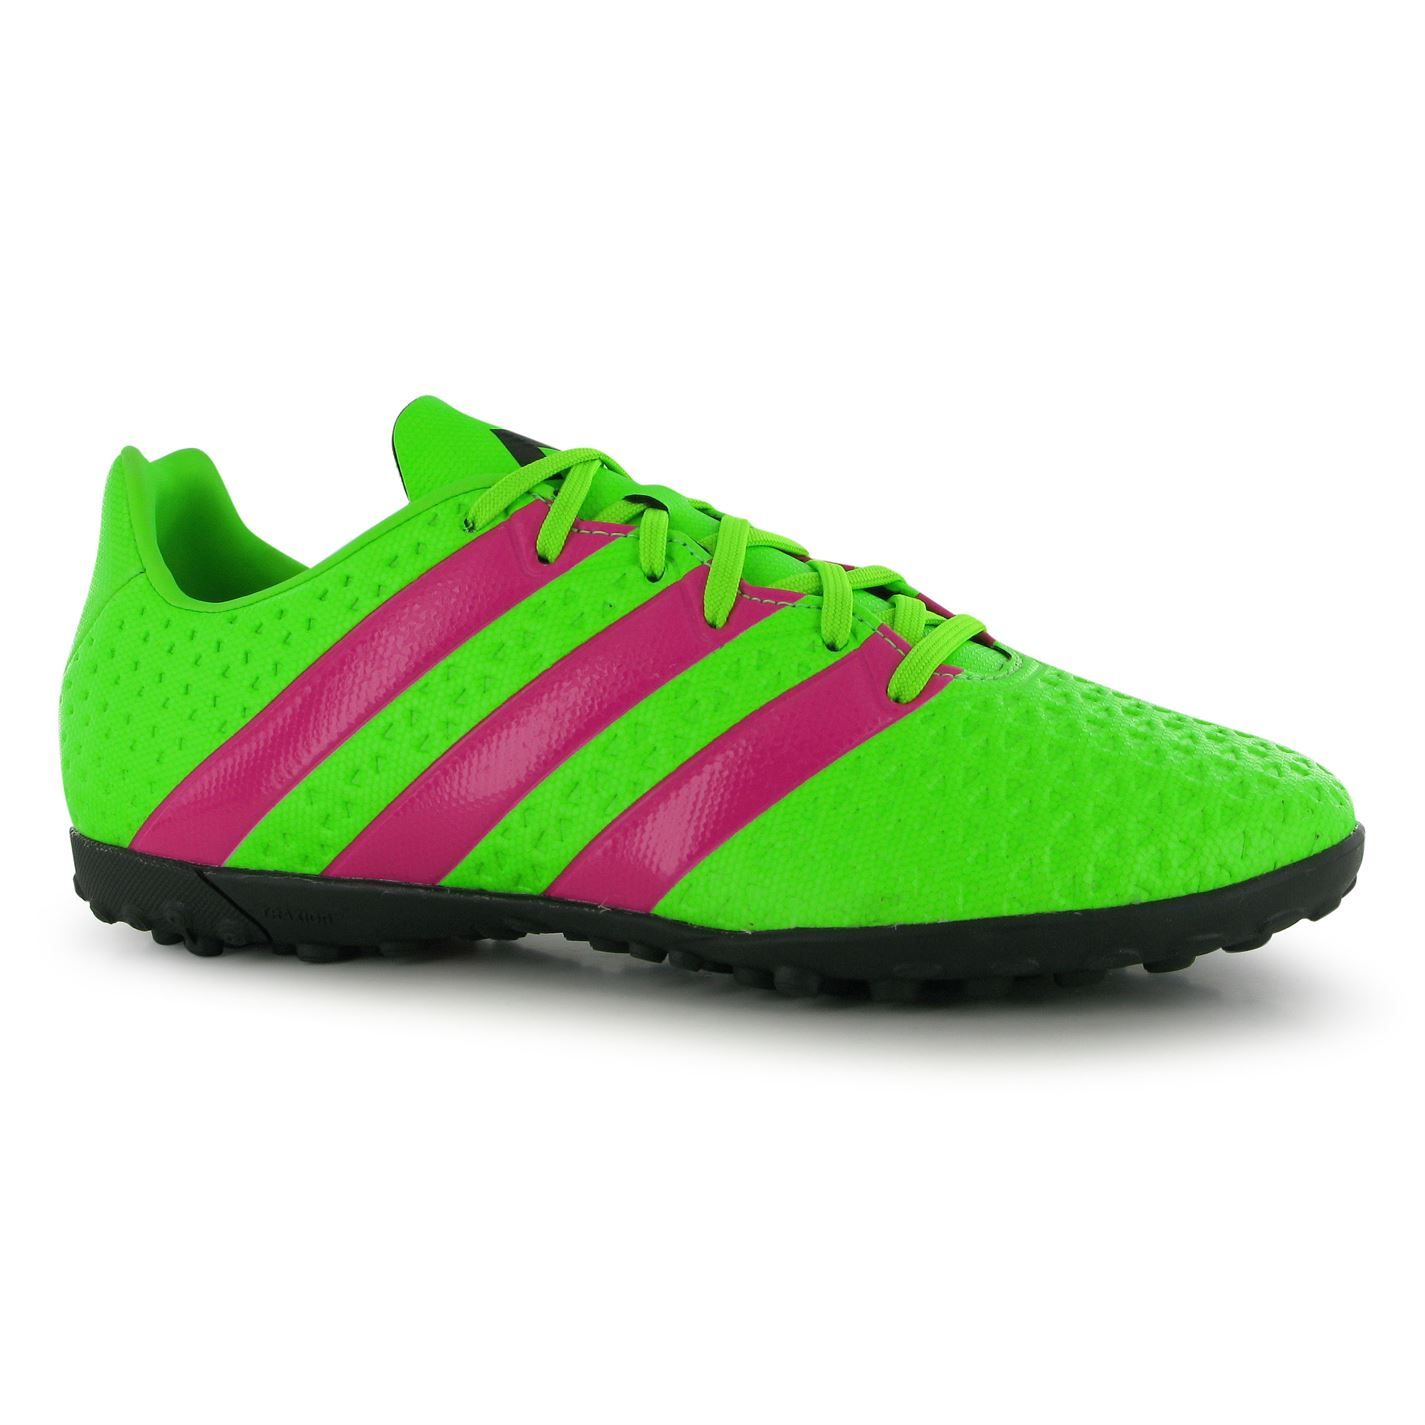 adidas | adidas Ace 16.4 Mens Astro Turf Trainers | Football Boots TF